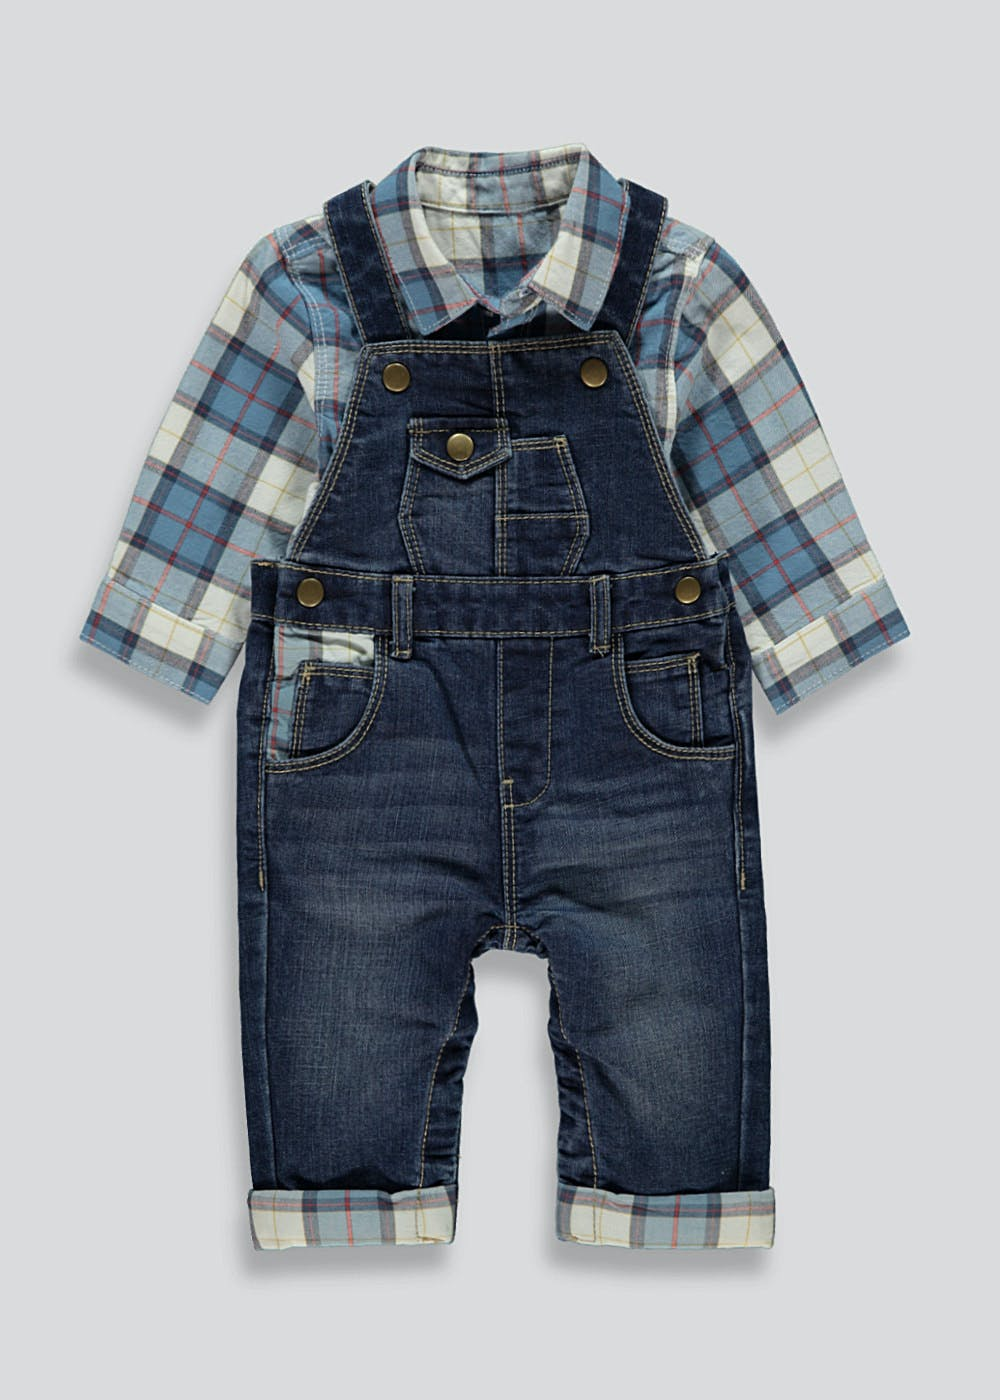 Zerototens Kids Jeans for 0-4 Years Old Newborn Toddler Baby Boys Girls Sleeveless Overalls Backless Rompers Jumpsuit Classic Denim Pants Kids Dungarees Casual Holiday Outfits